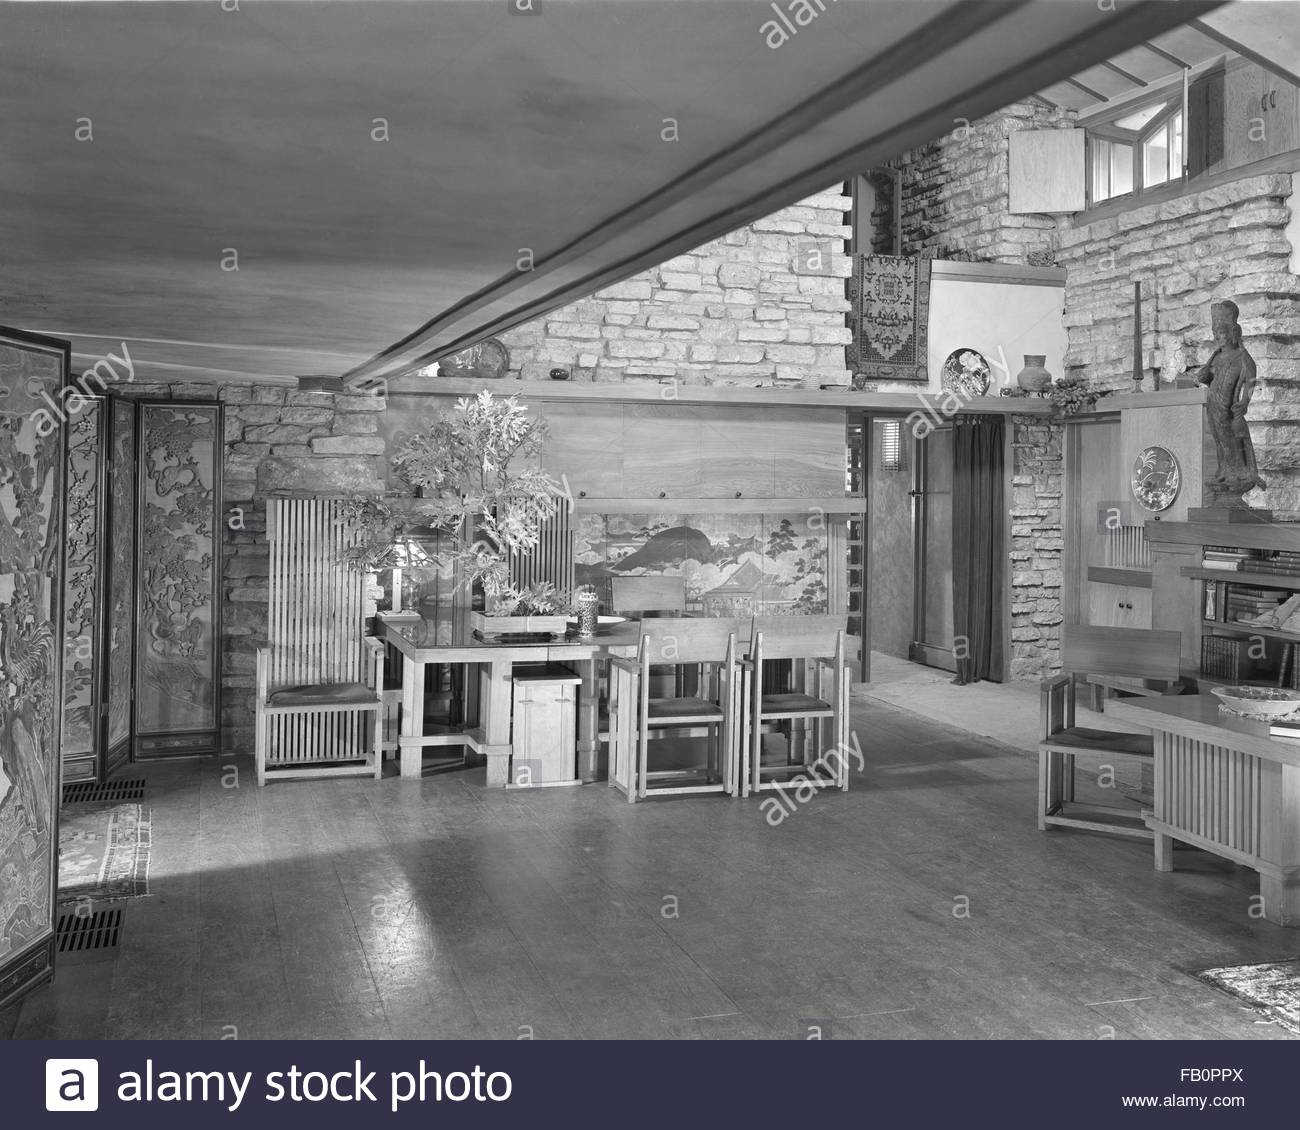 Taliesin East in Spring Green (Wis.), 1937 Dec. Interior sitting area. - Stock Image